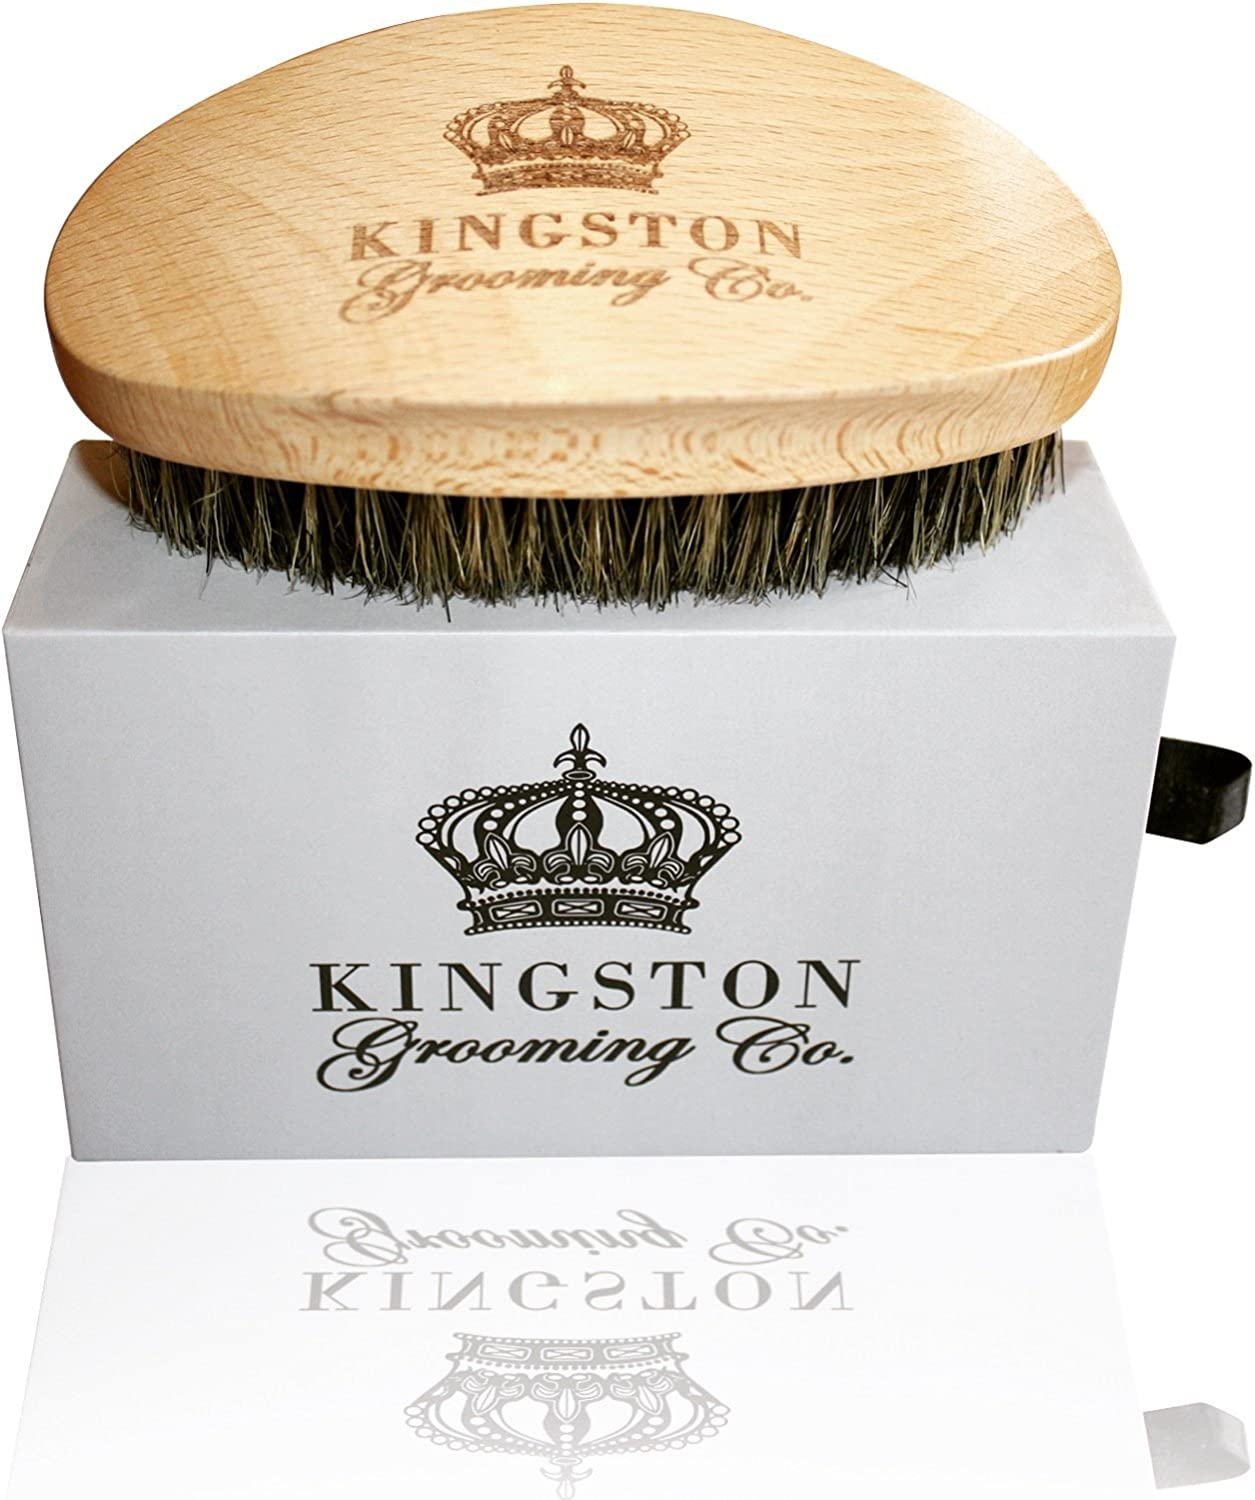 Kingston Grooming- 100% Boar Hair Bristle Brush for Men